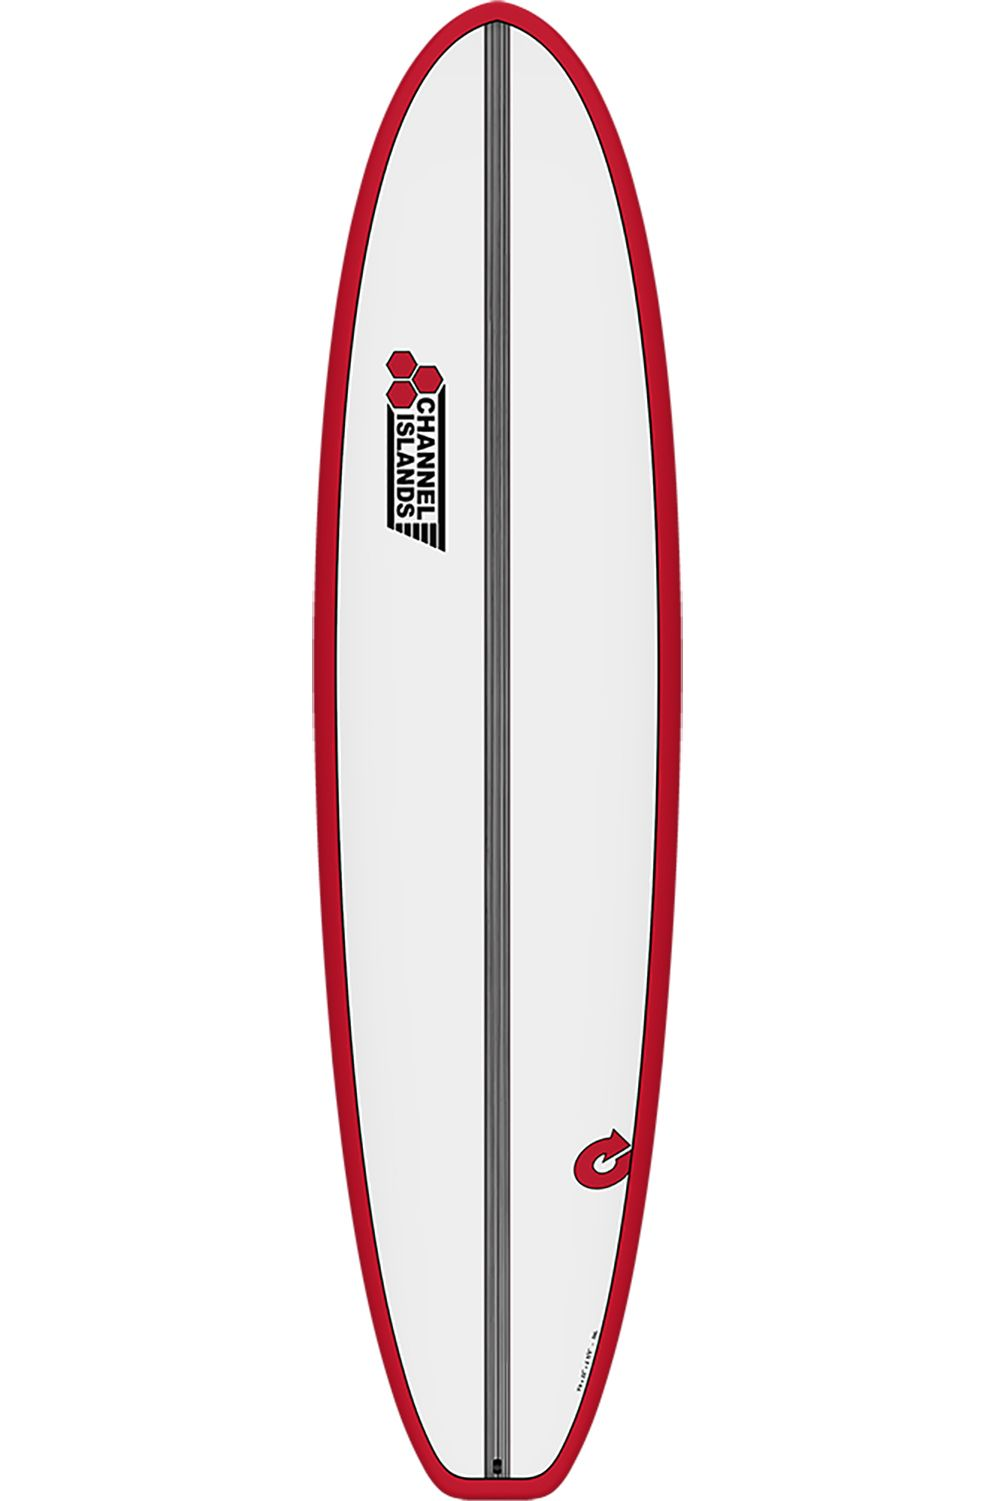 Prancha Surf Torq 7'6 CHANCHO RED + PINLINE Squash Tail - Color Futures 7ft6